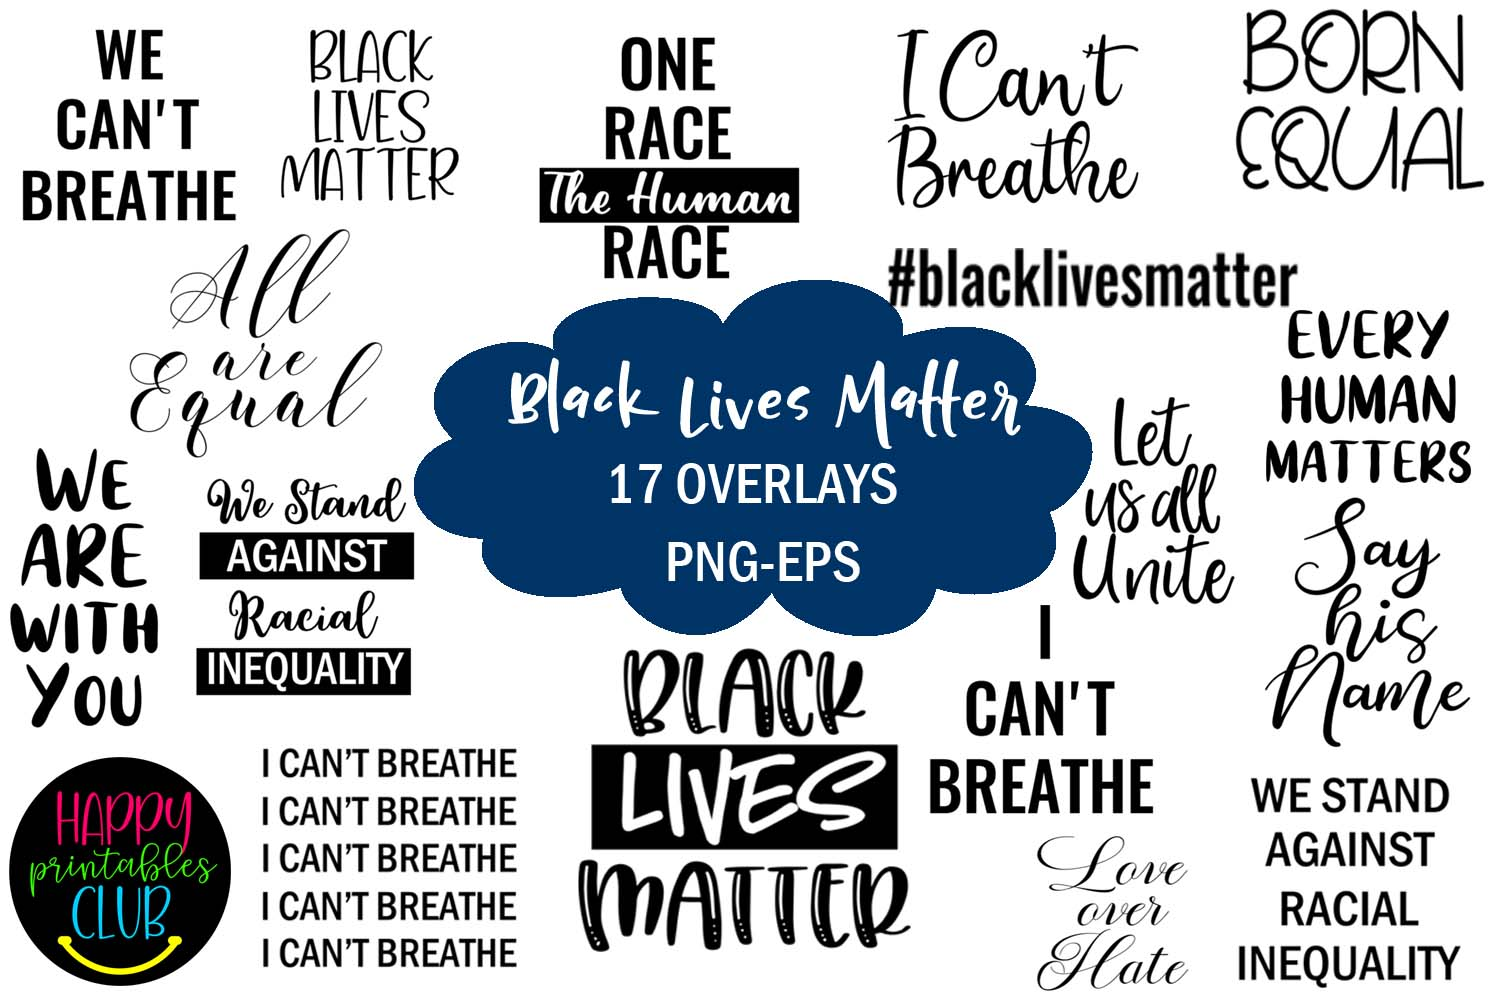 Download Free Black Lives Matter Graphic By Happy Printables Club Creative for Cricut Explore, Silhouette and other cutting machines.